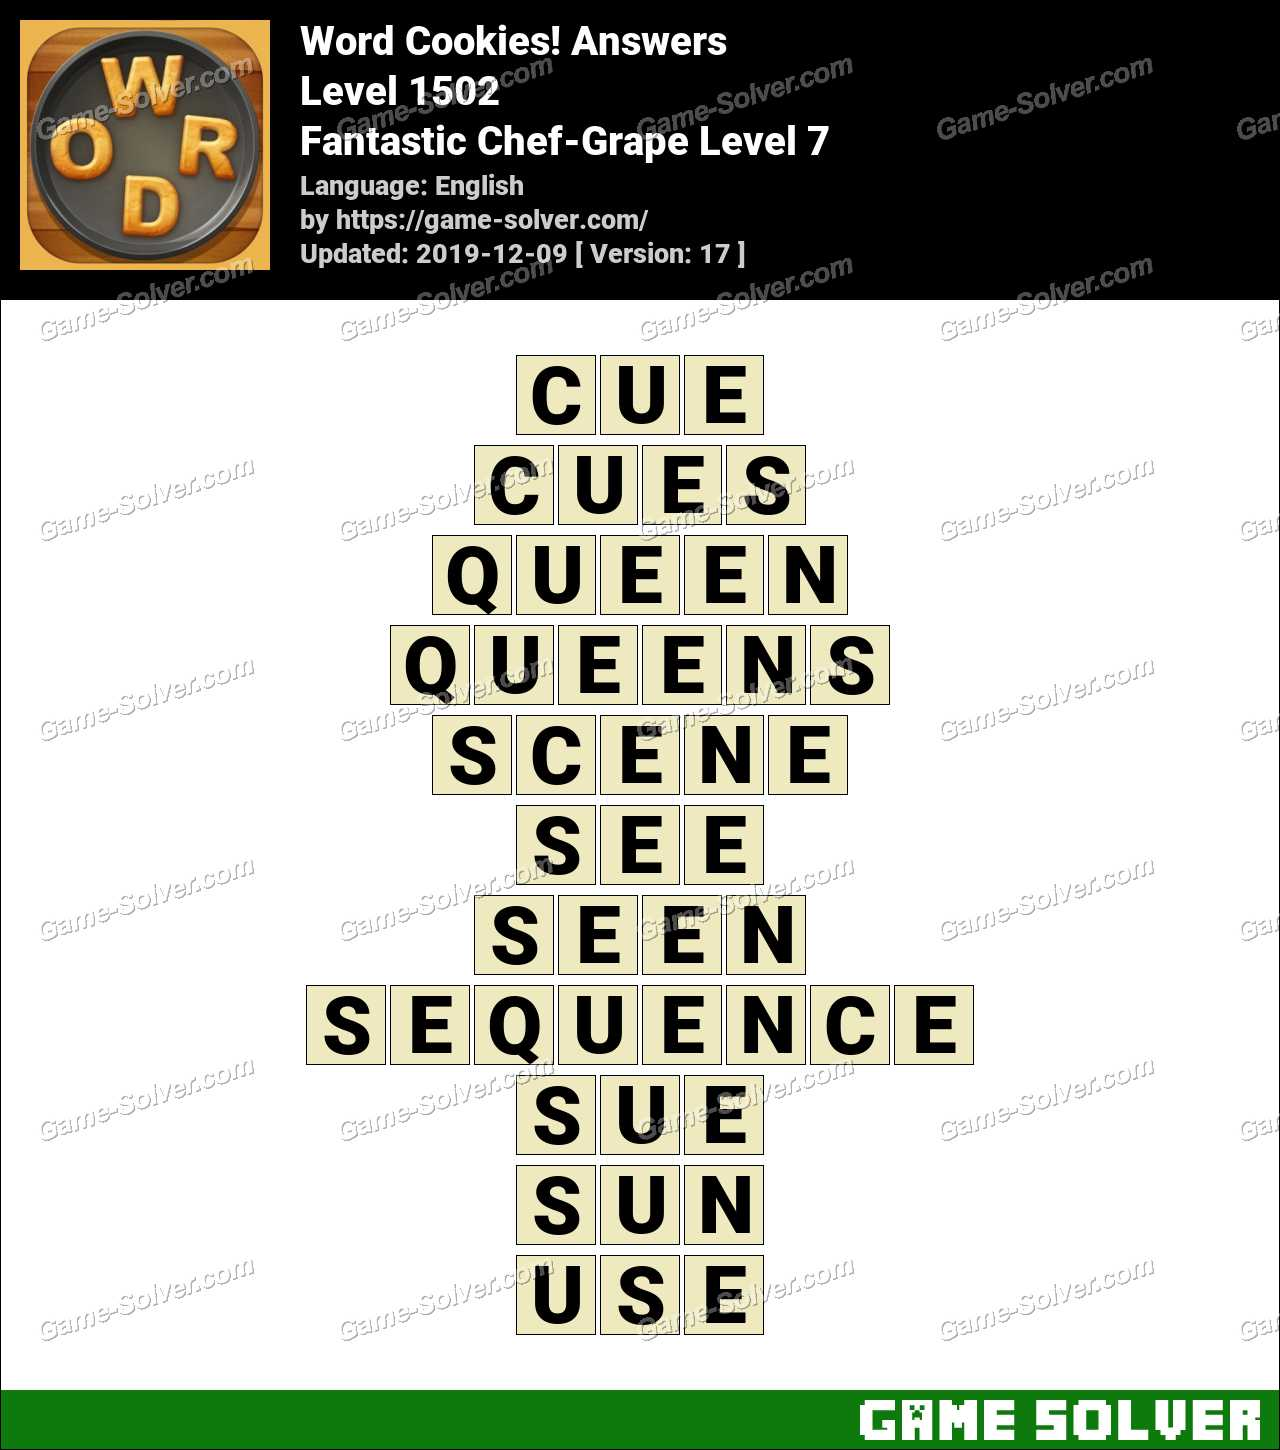 Word Cookies Fantastic Chef-Grape Level 7 Answers